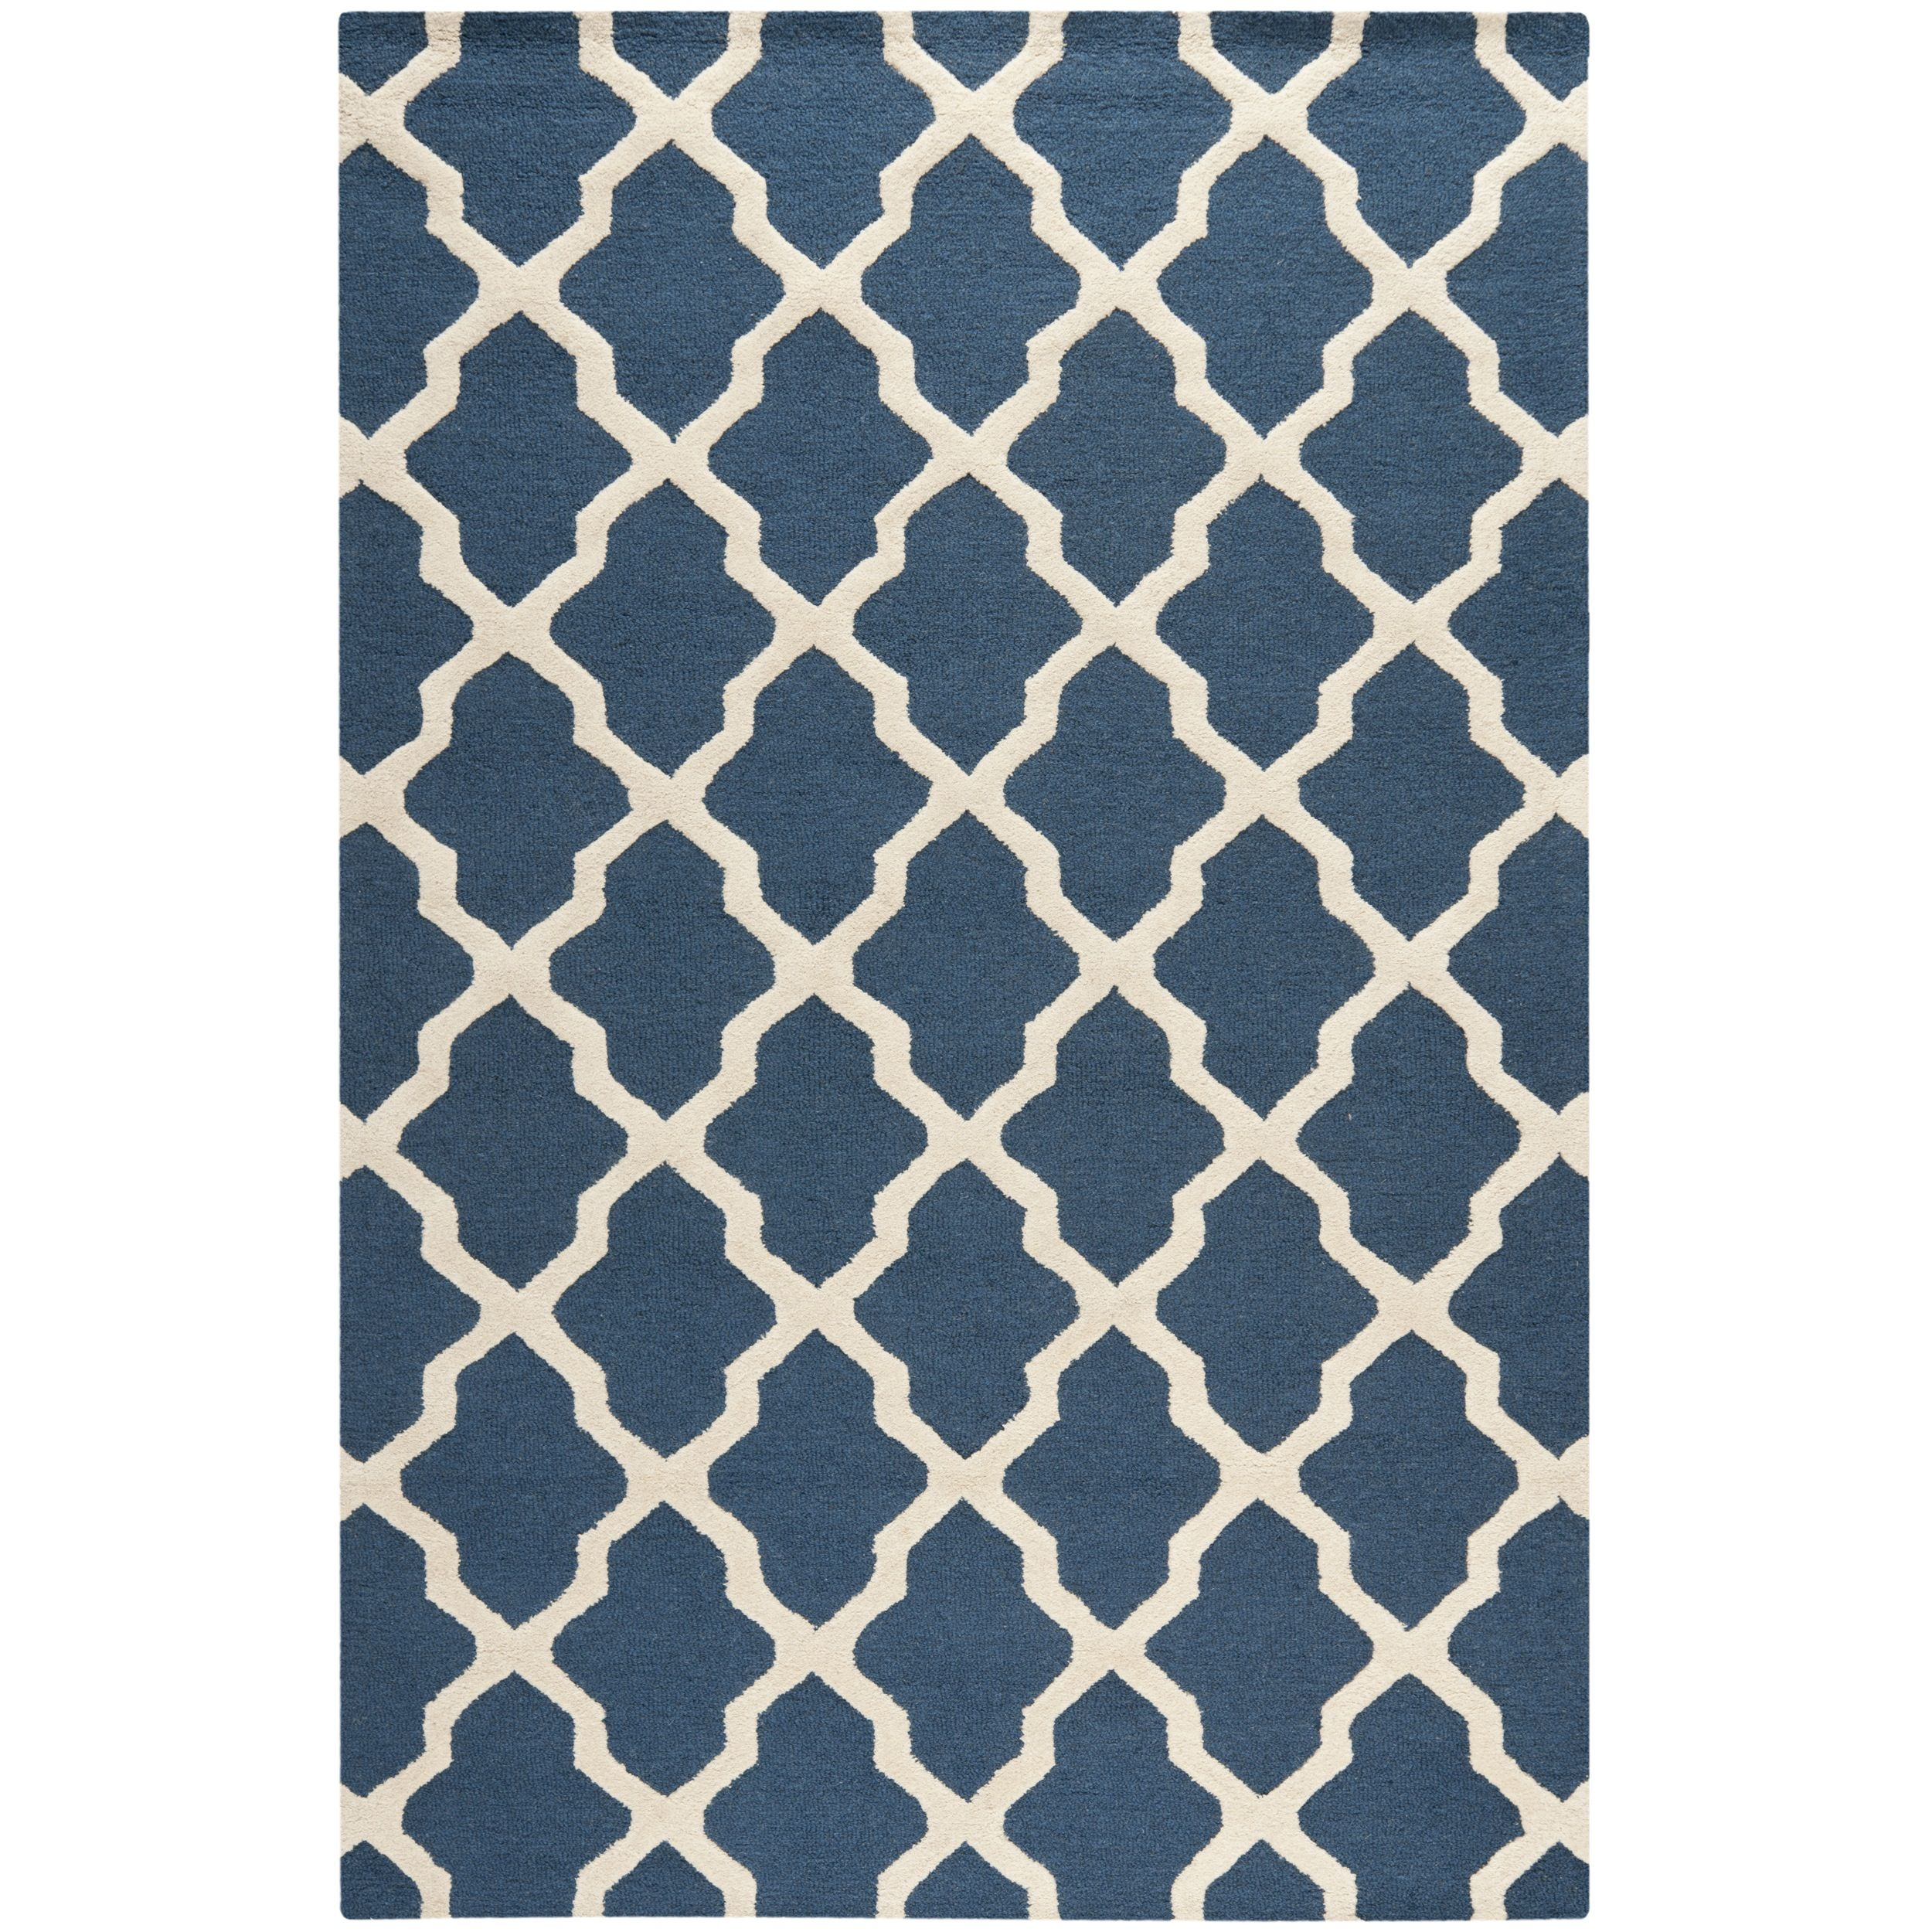 This Patterned Blue Wool Rug Combines Bright Modern Colors With A Traditional Moroccan Pattern The Simple Pattern Is Blue Wool Rugs Rug Texture Navy Blue Rug